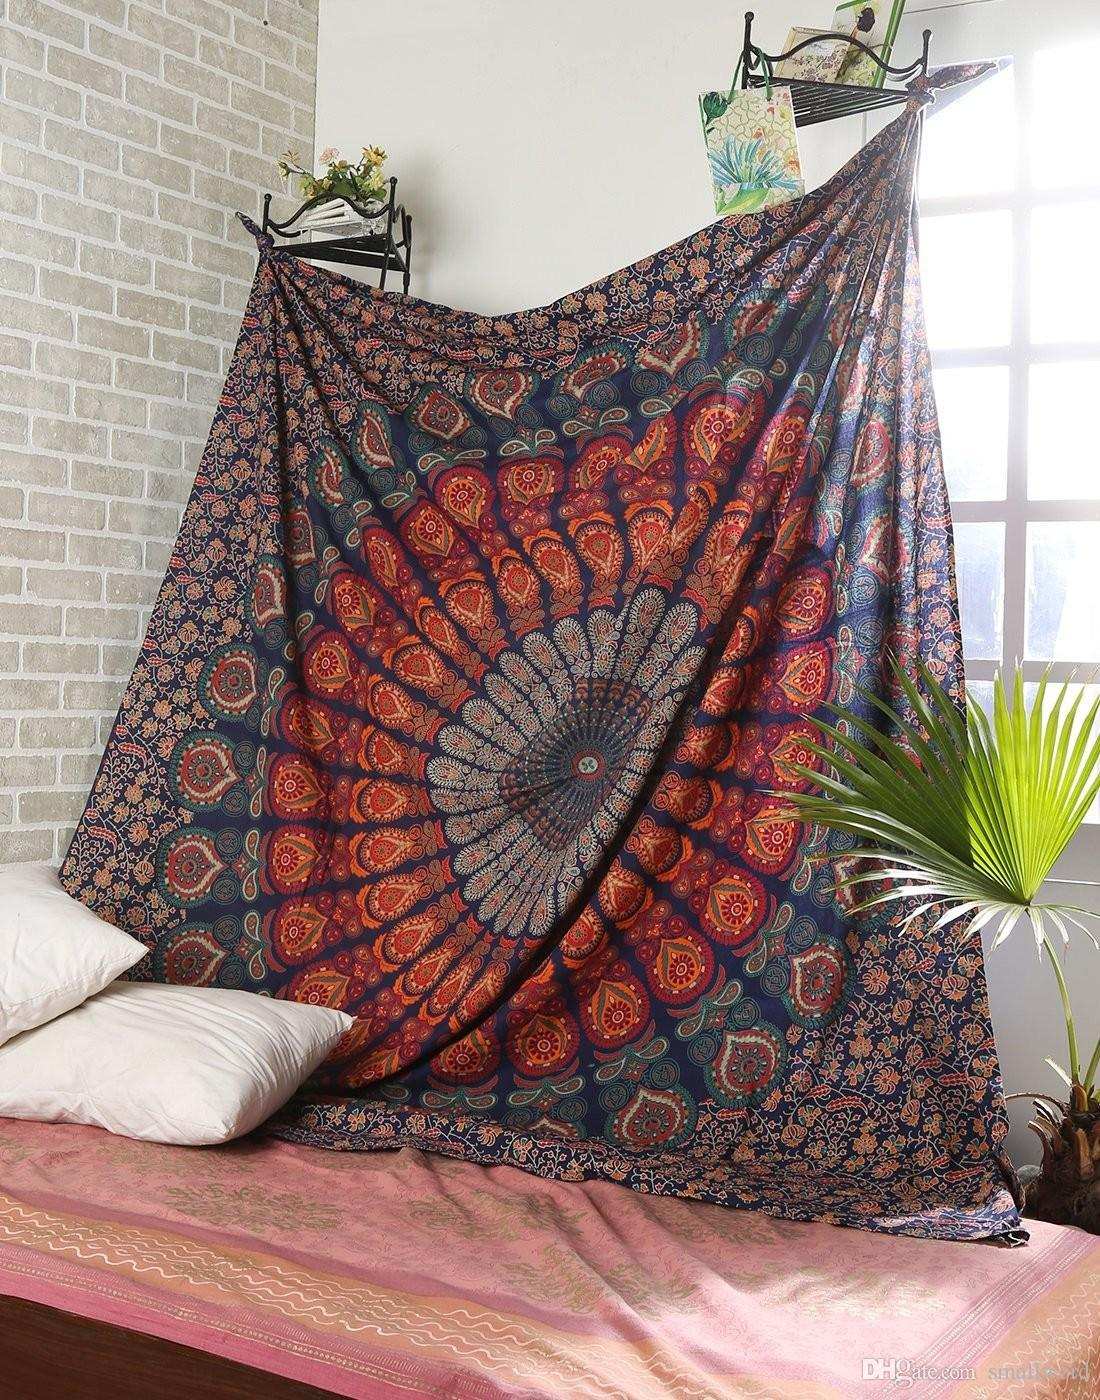 Mandala Tapestry Indian Wall Hanging Boho Home Decor Tapestry